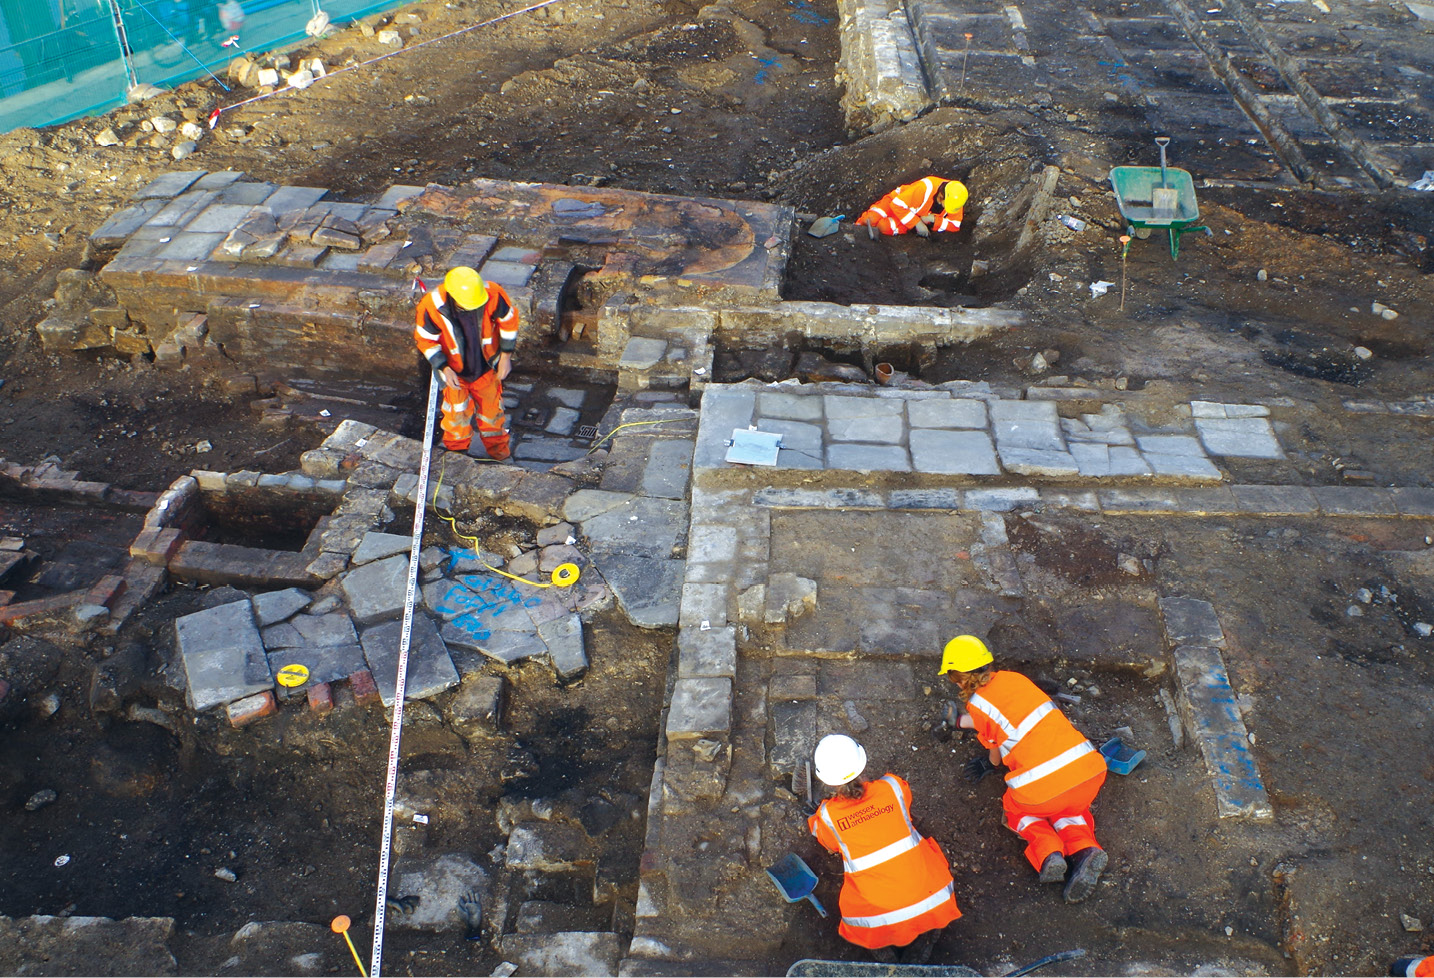 RIGHT Wessex Archaeology excavating the boiler and pump rooms of the Milk Street Baths. This pioneering facility was one of the earliest of the public wash houses built in this country during the Victorian period.